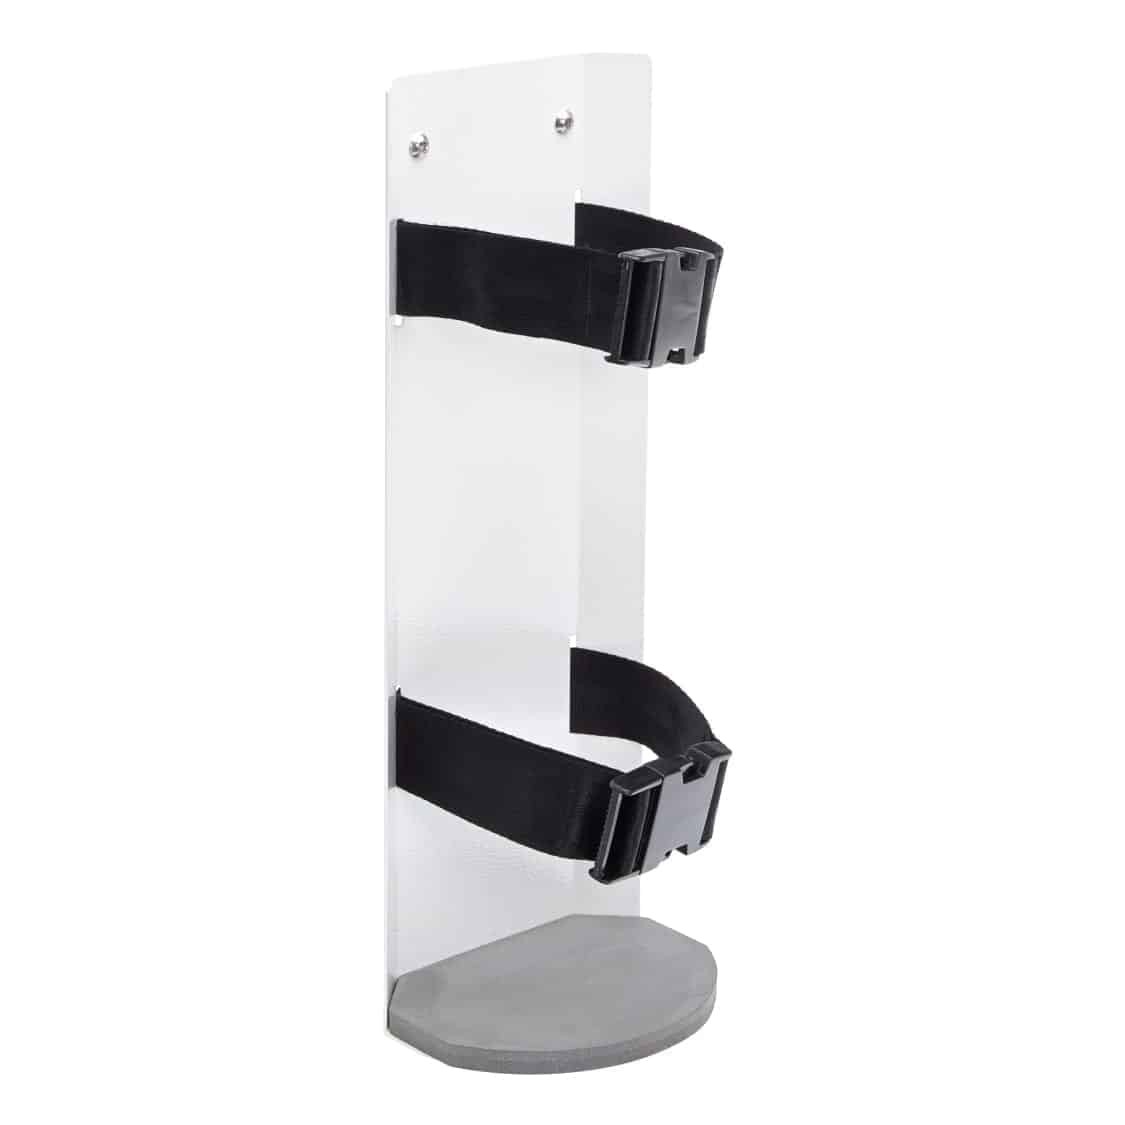 Oxygen holder (Small) & side rail